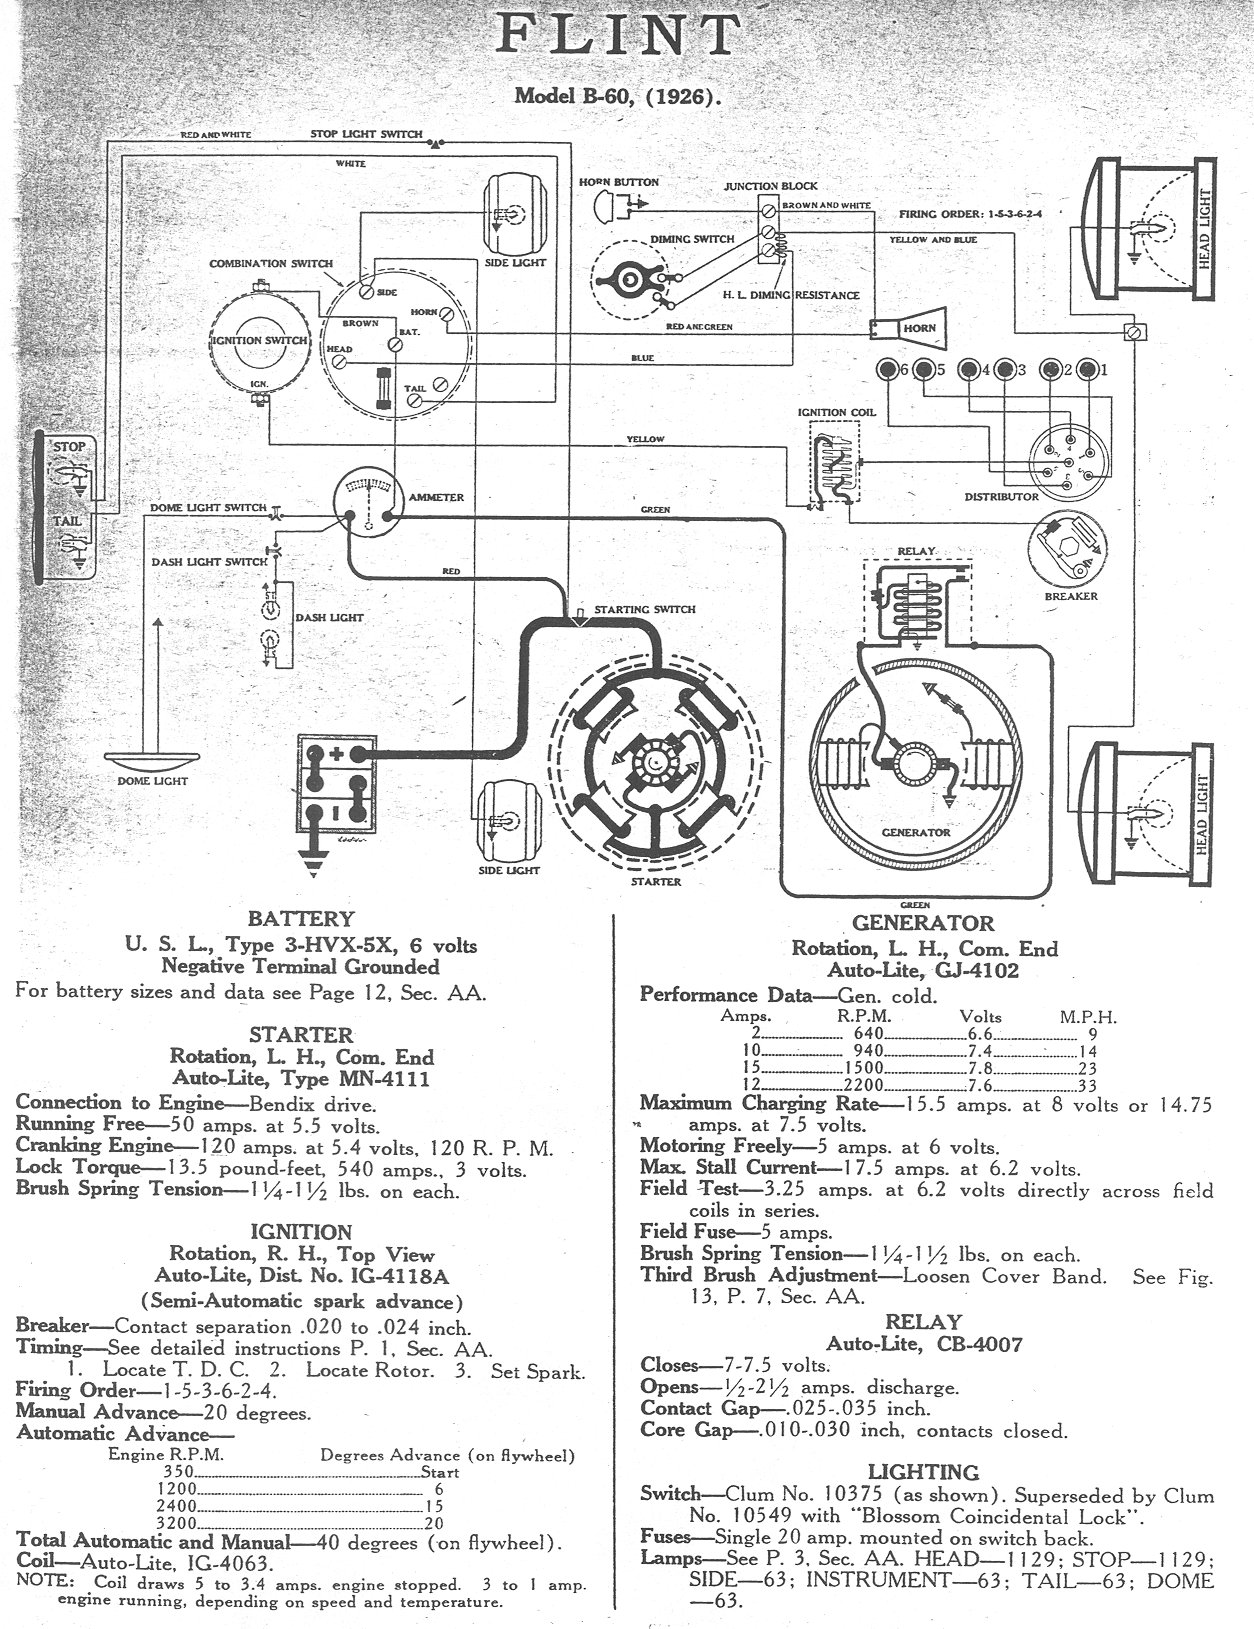 hight resolution of 1929 model a ford wiring diagram wiring diagrams scematic rh 22 jessicadonath de 1928 ford model a wiring diagram 1928 ford model a wiring diagram